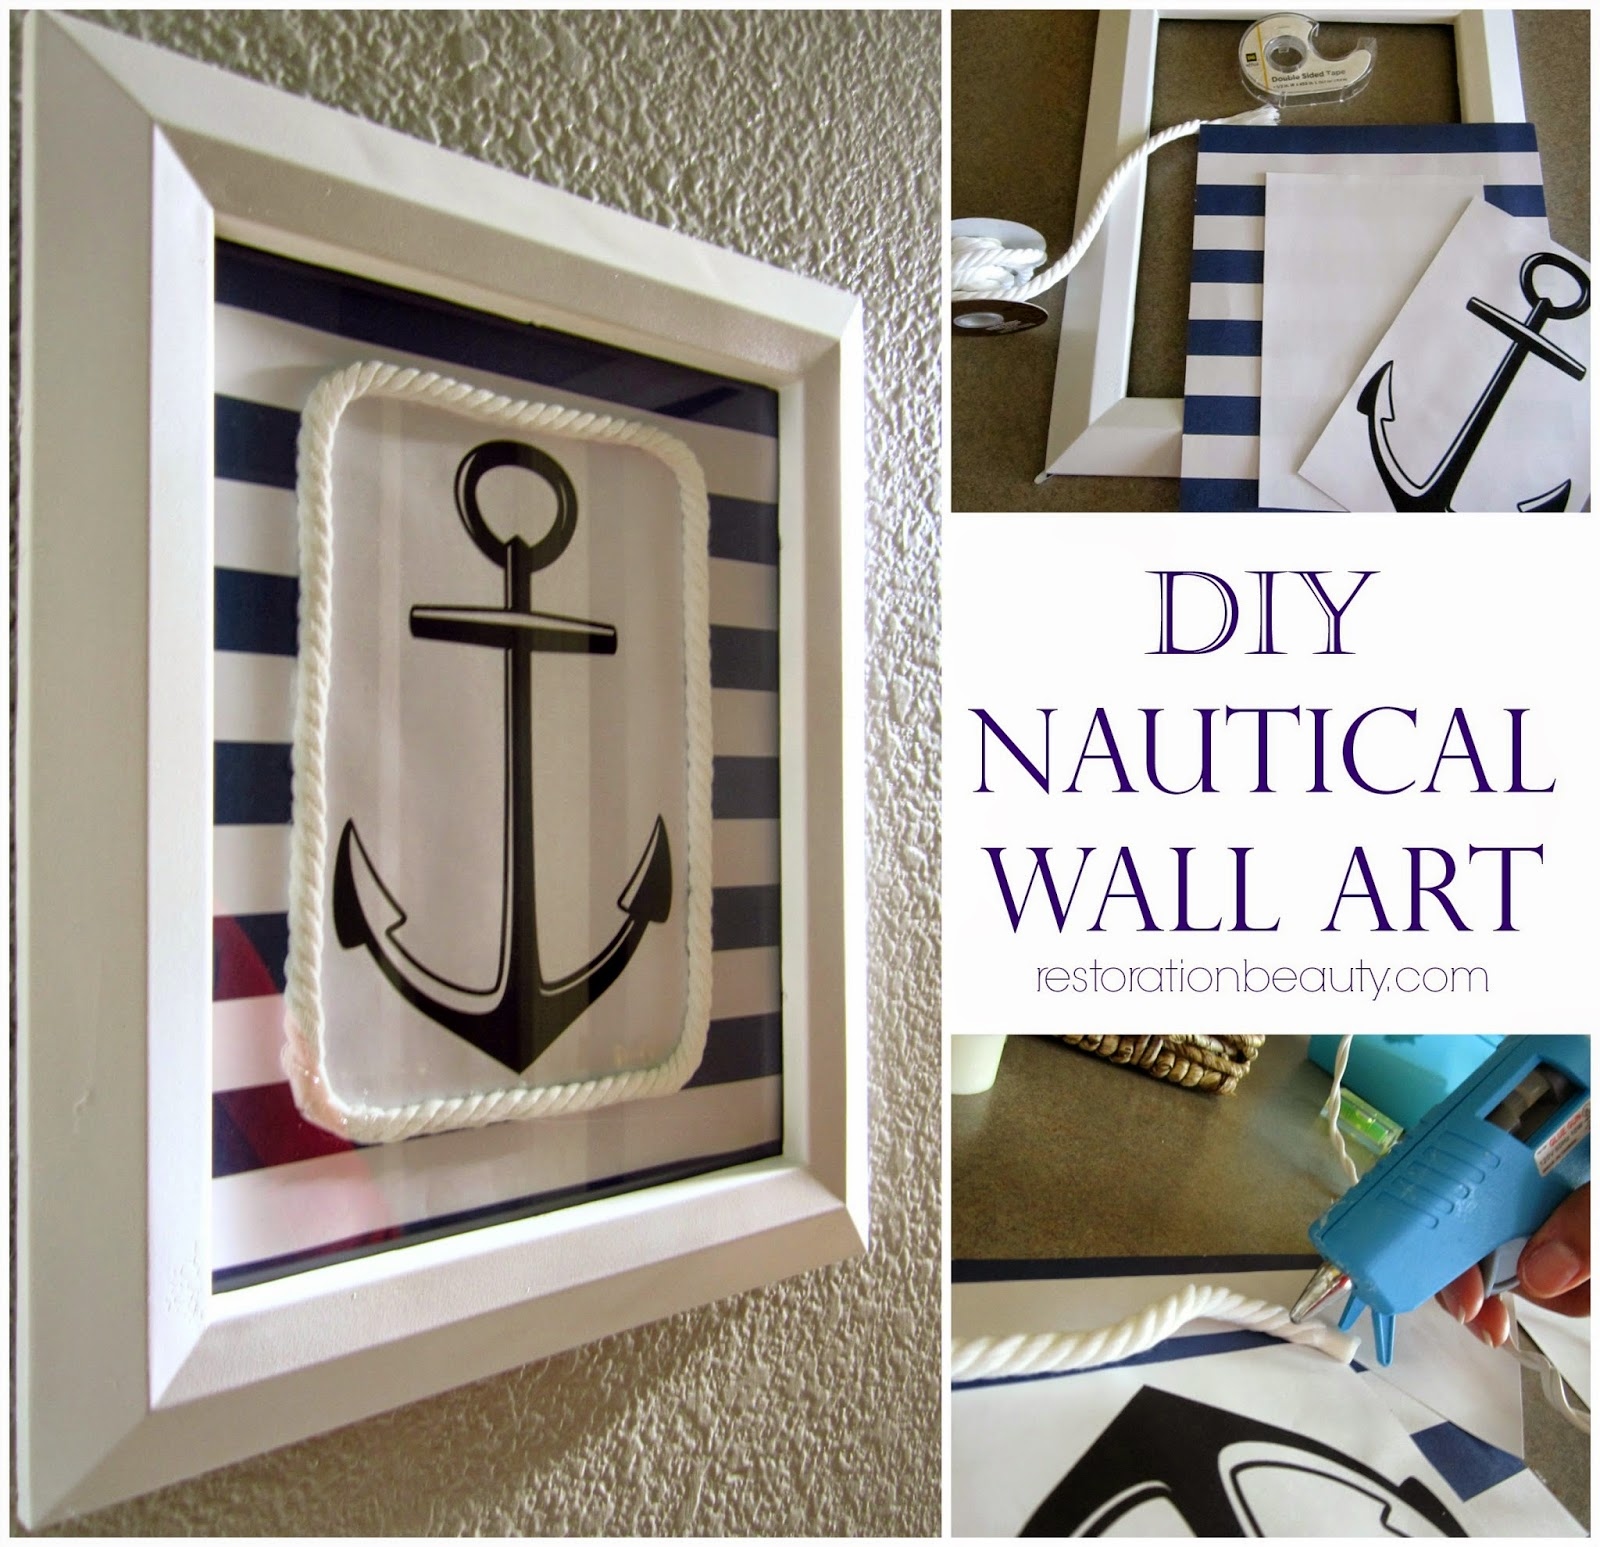 Restoration Beauty: DIY Nautical Wall Art